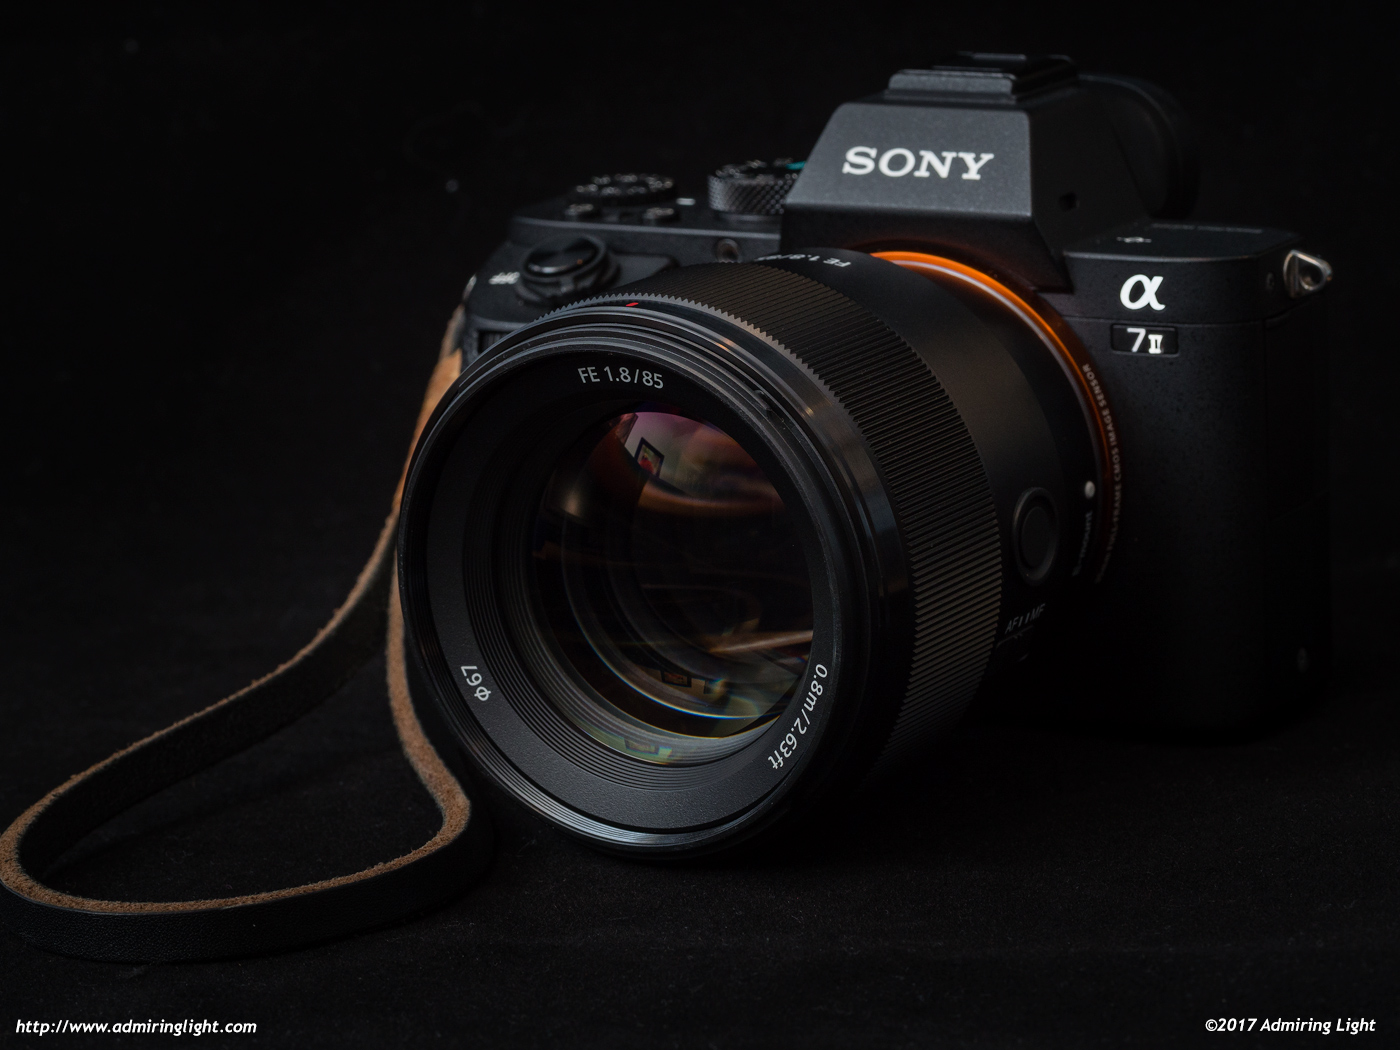 The Sony FE 85mm f/1.8 on the A7 II